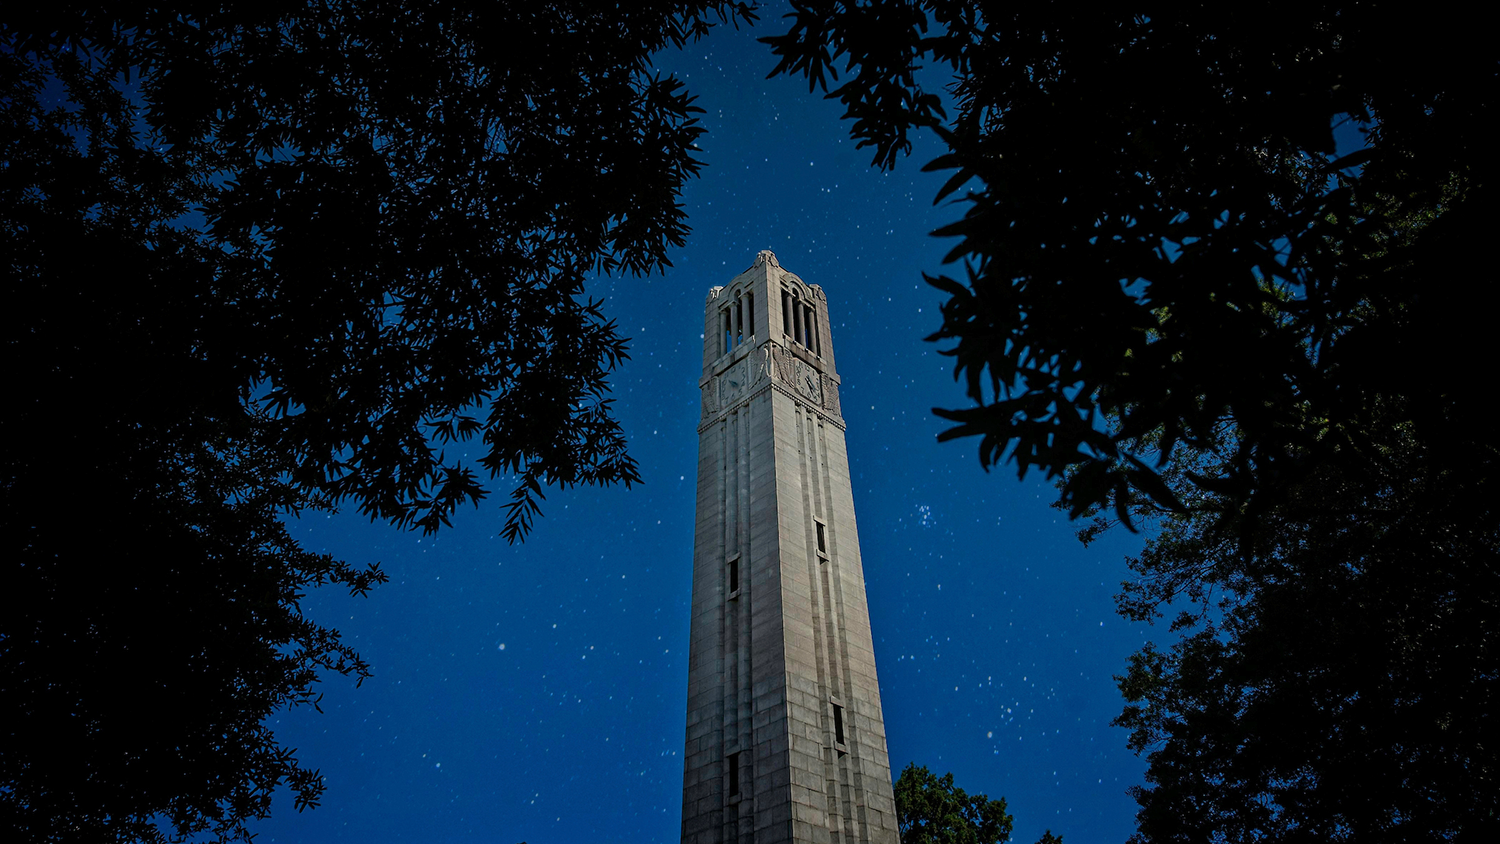 belltower against the starry night sky